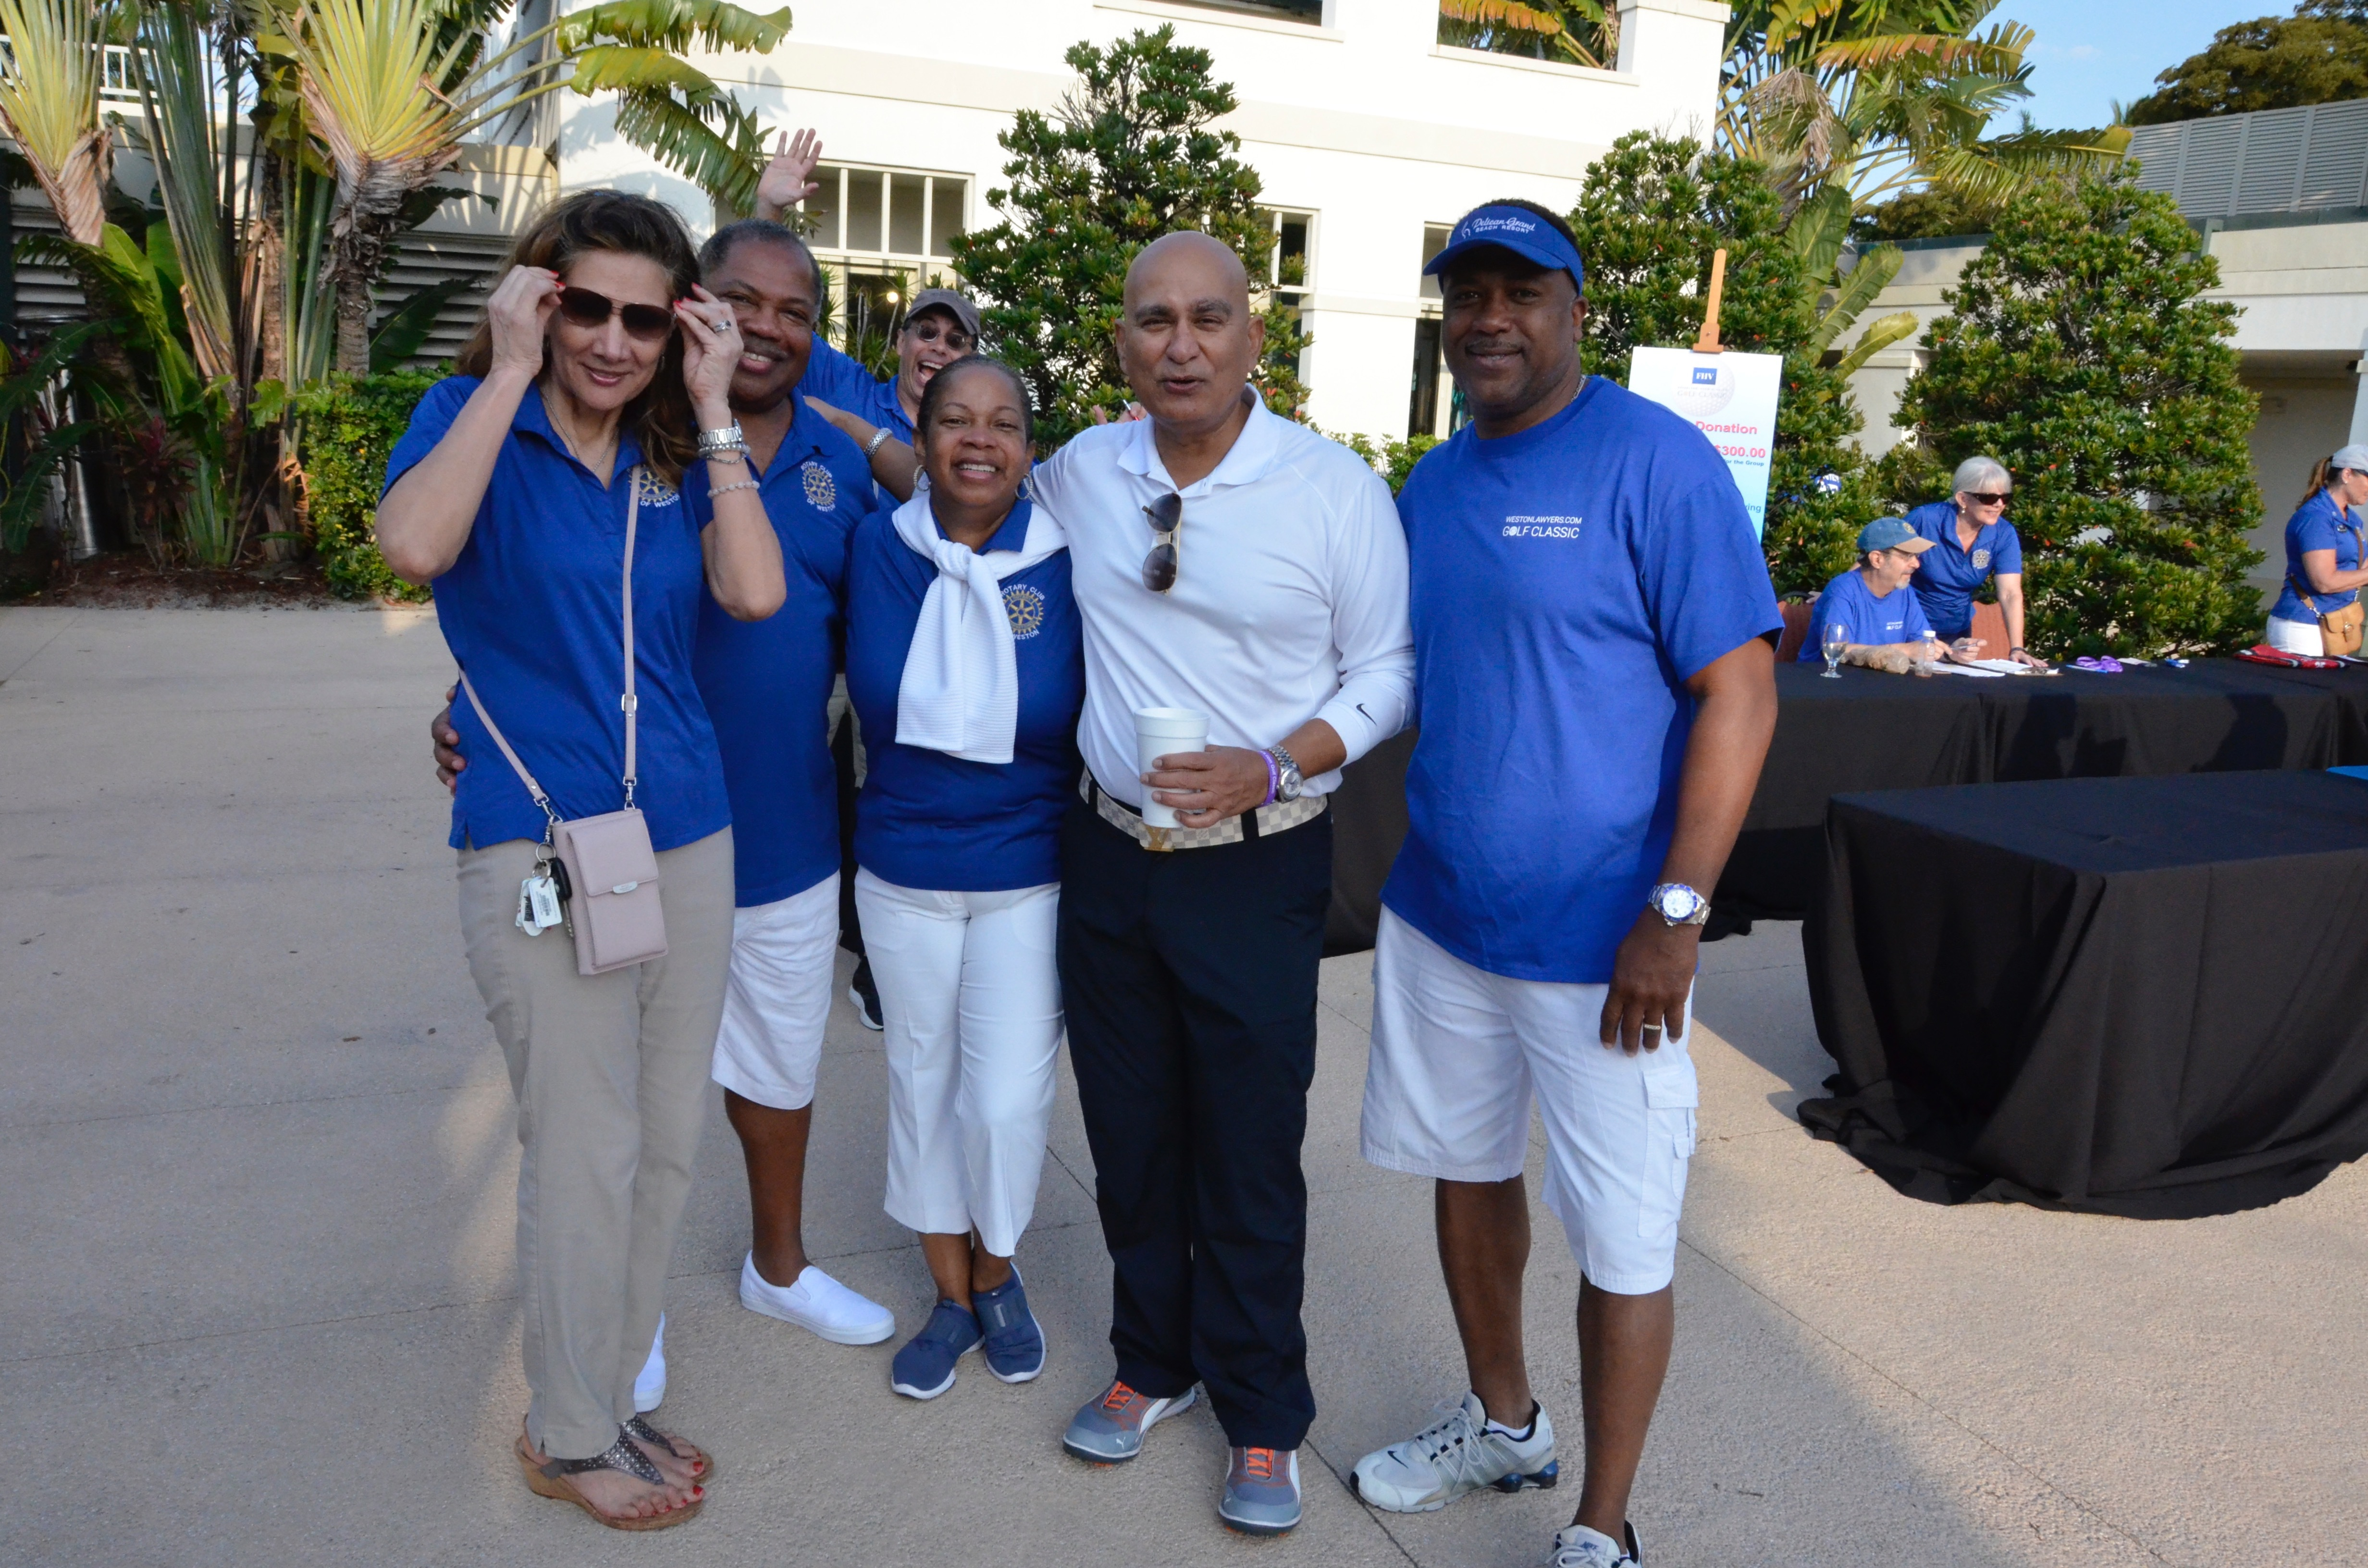 33rd Annual Rotary Golf Classic Sponsored by FHVLEGAL.COM gallery image #58